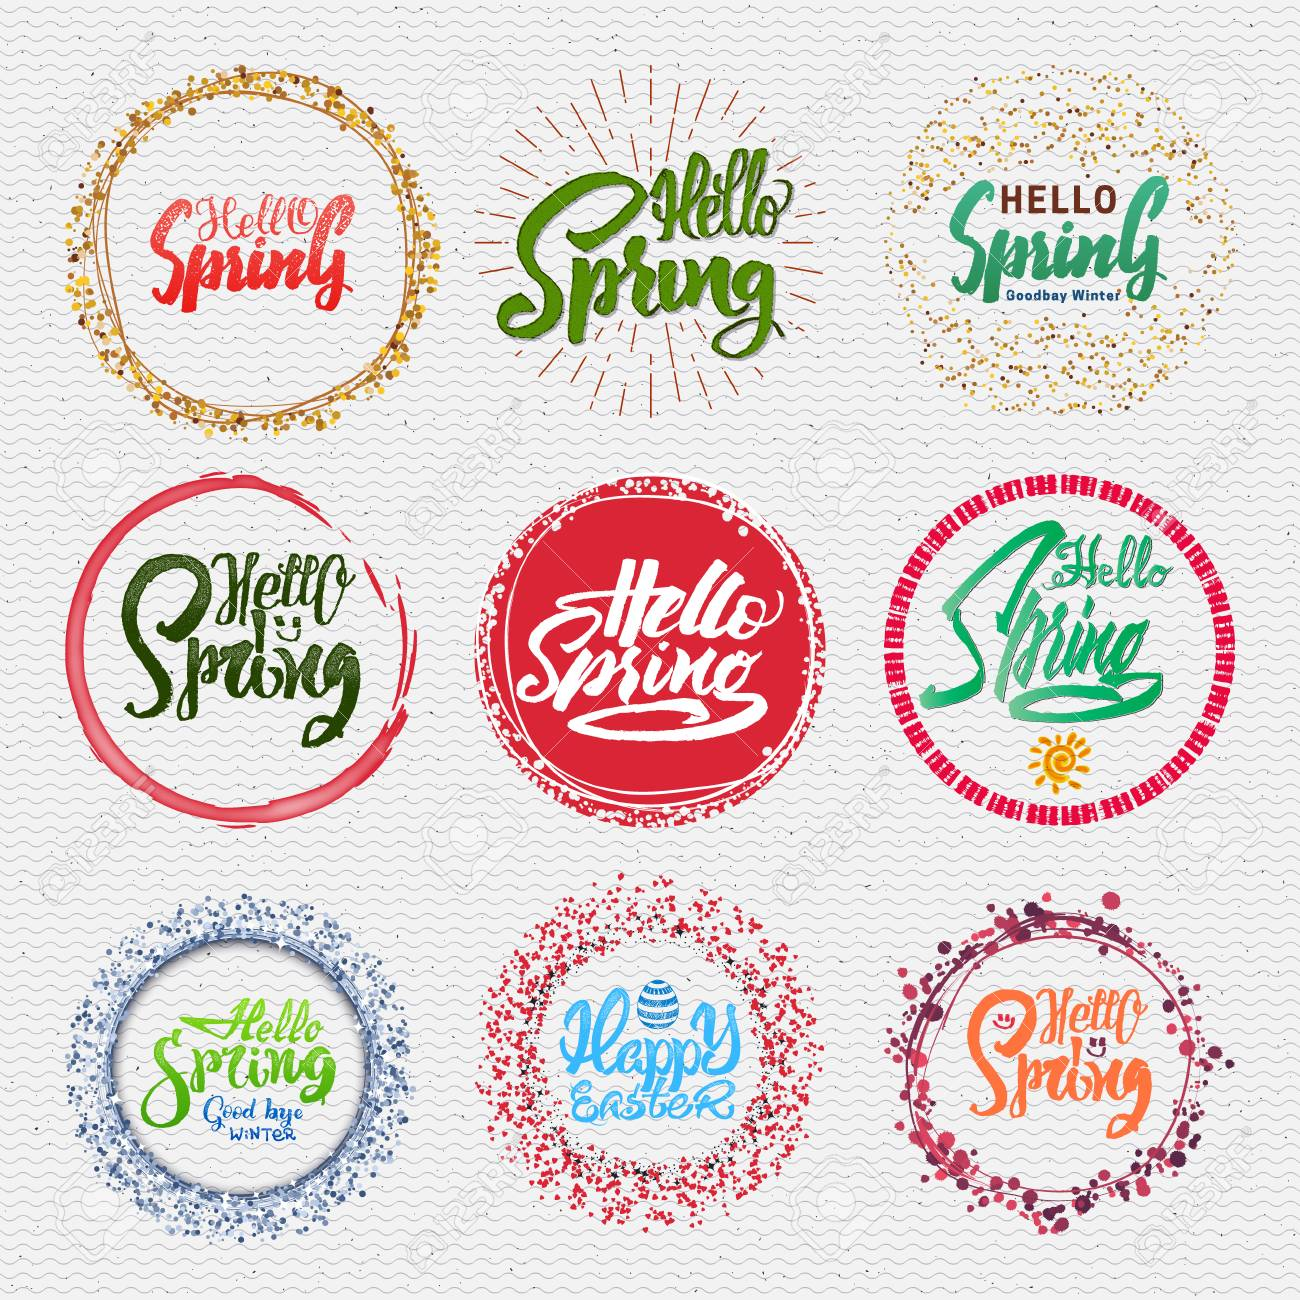 Hello Spring Lettering Calligraphy Sticker For Greeting Cards